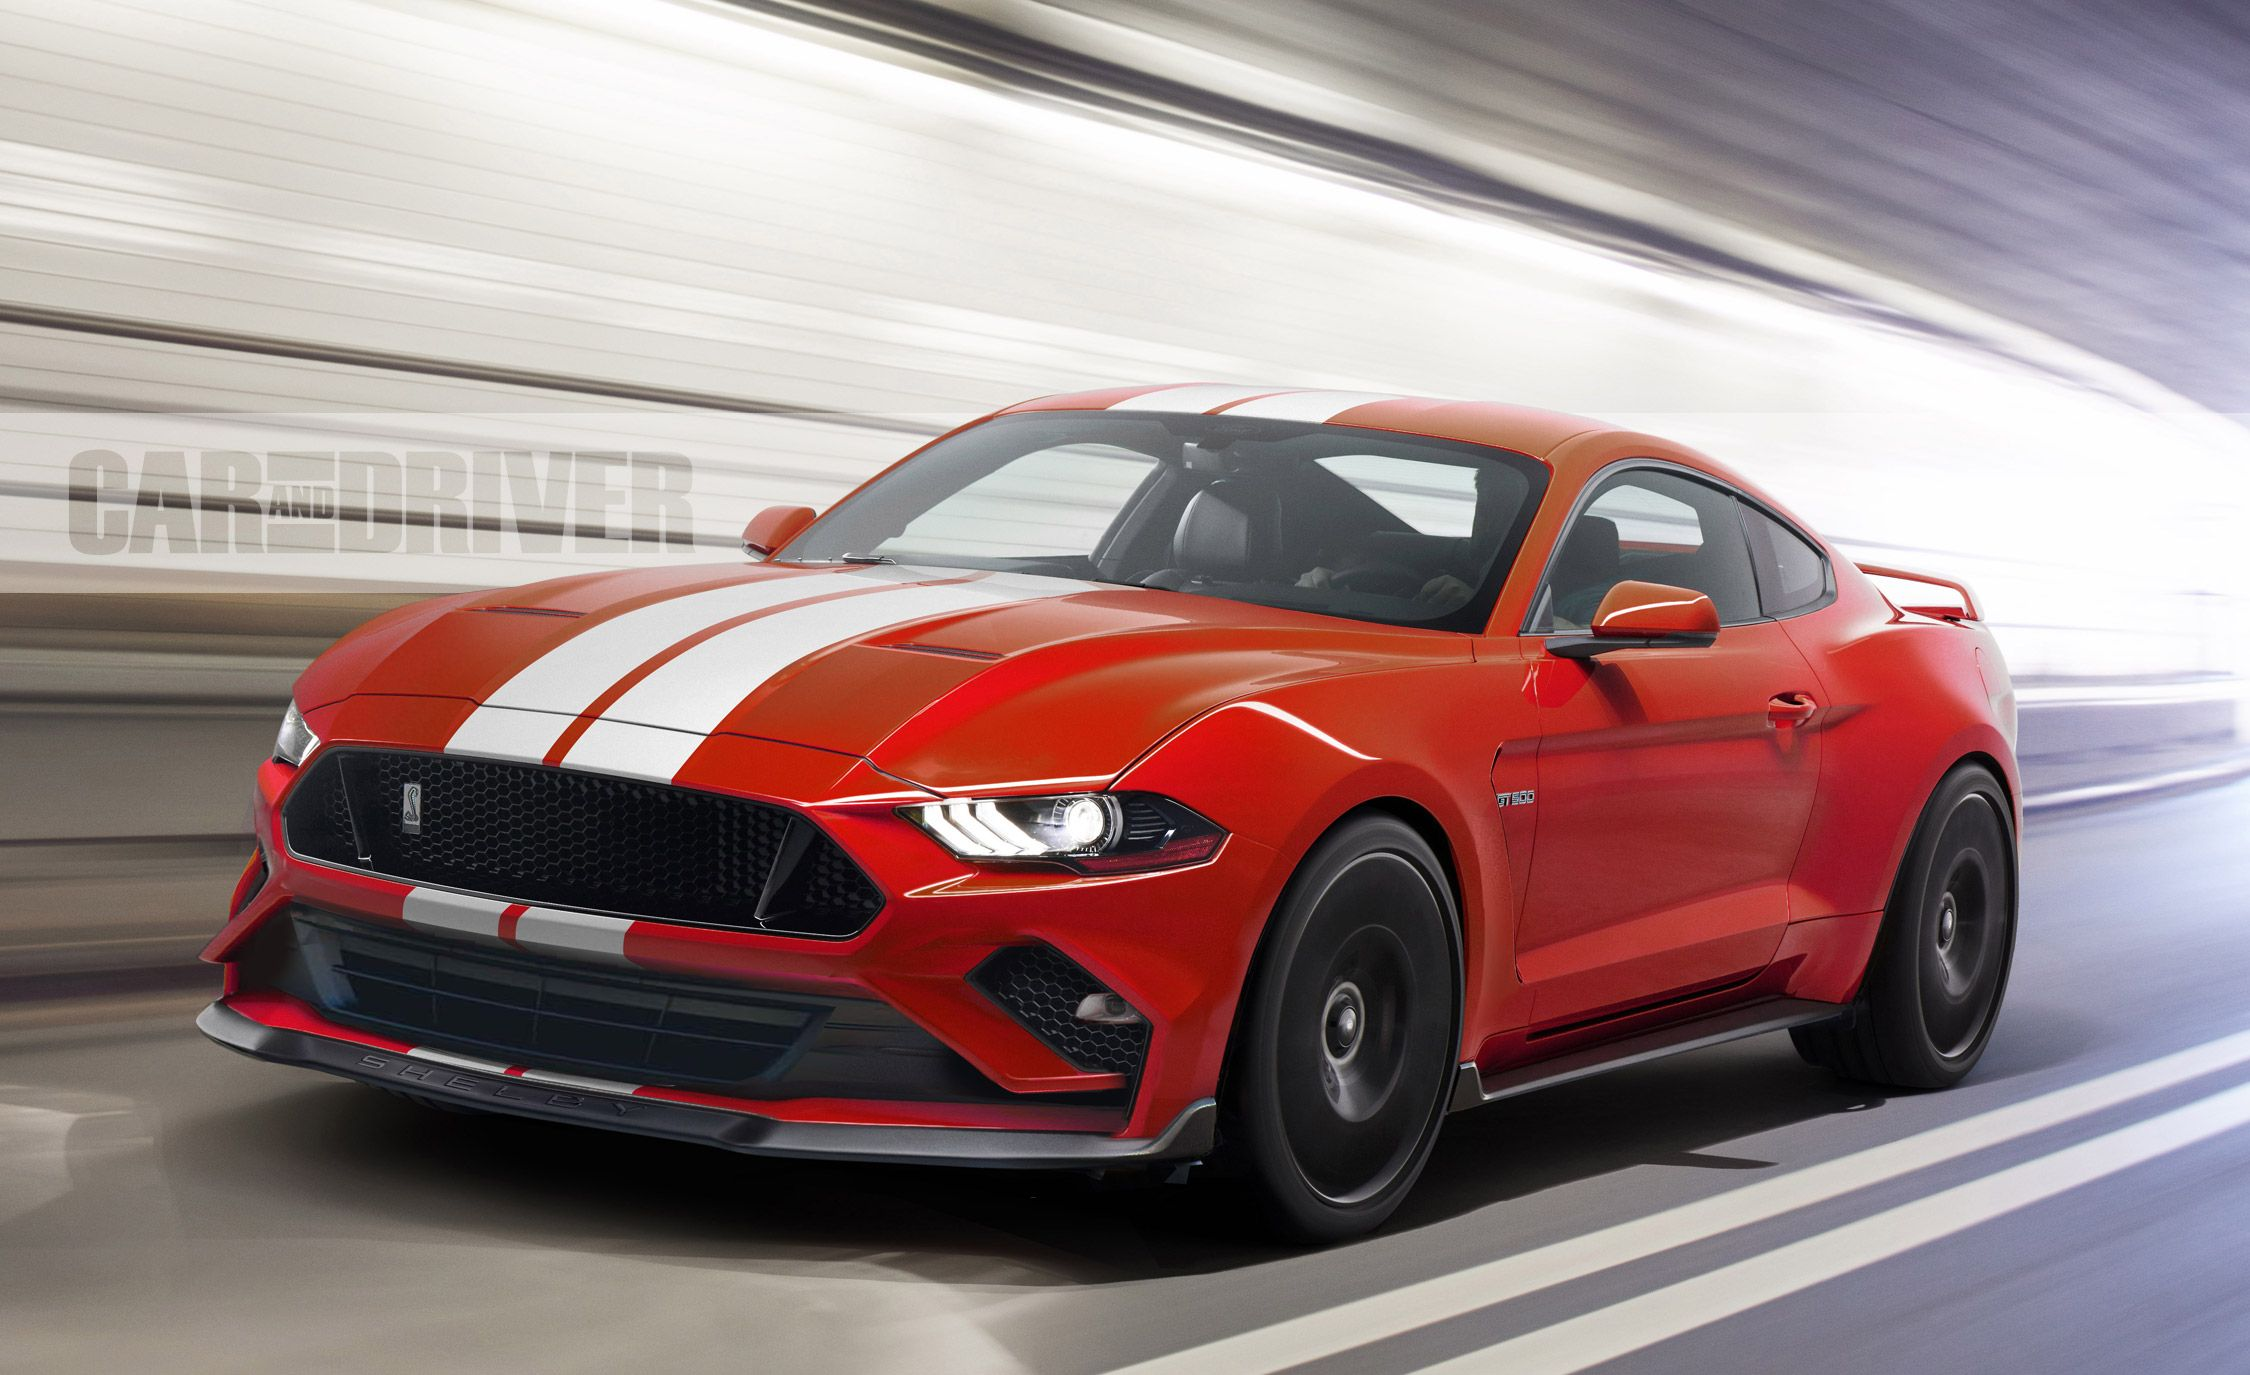 Shelby mustang photo - 9